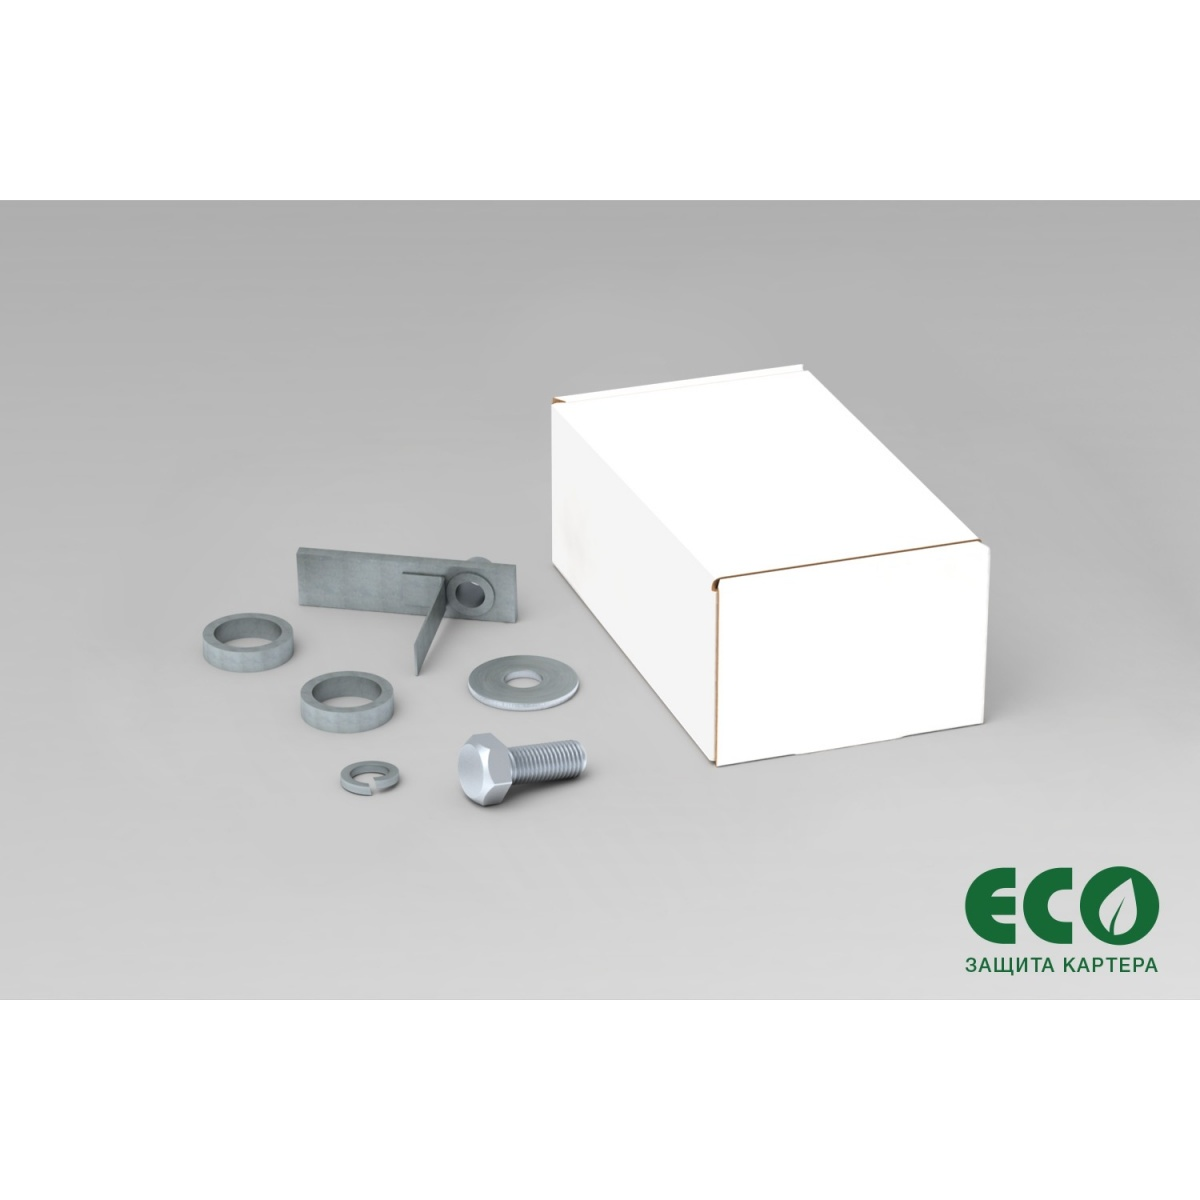 Set of fasteners for зкпп eco, ...